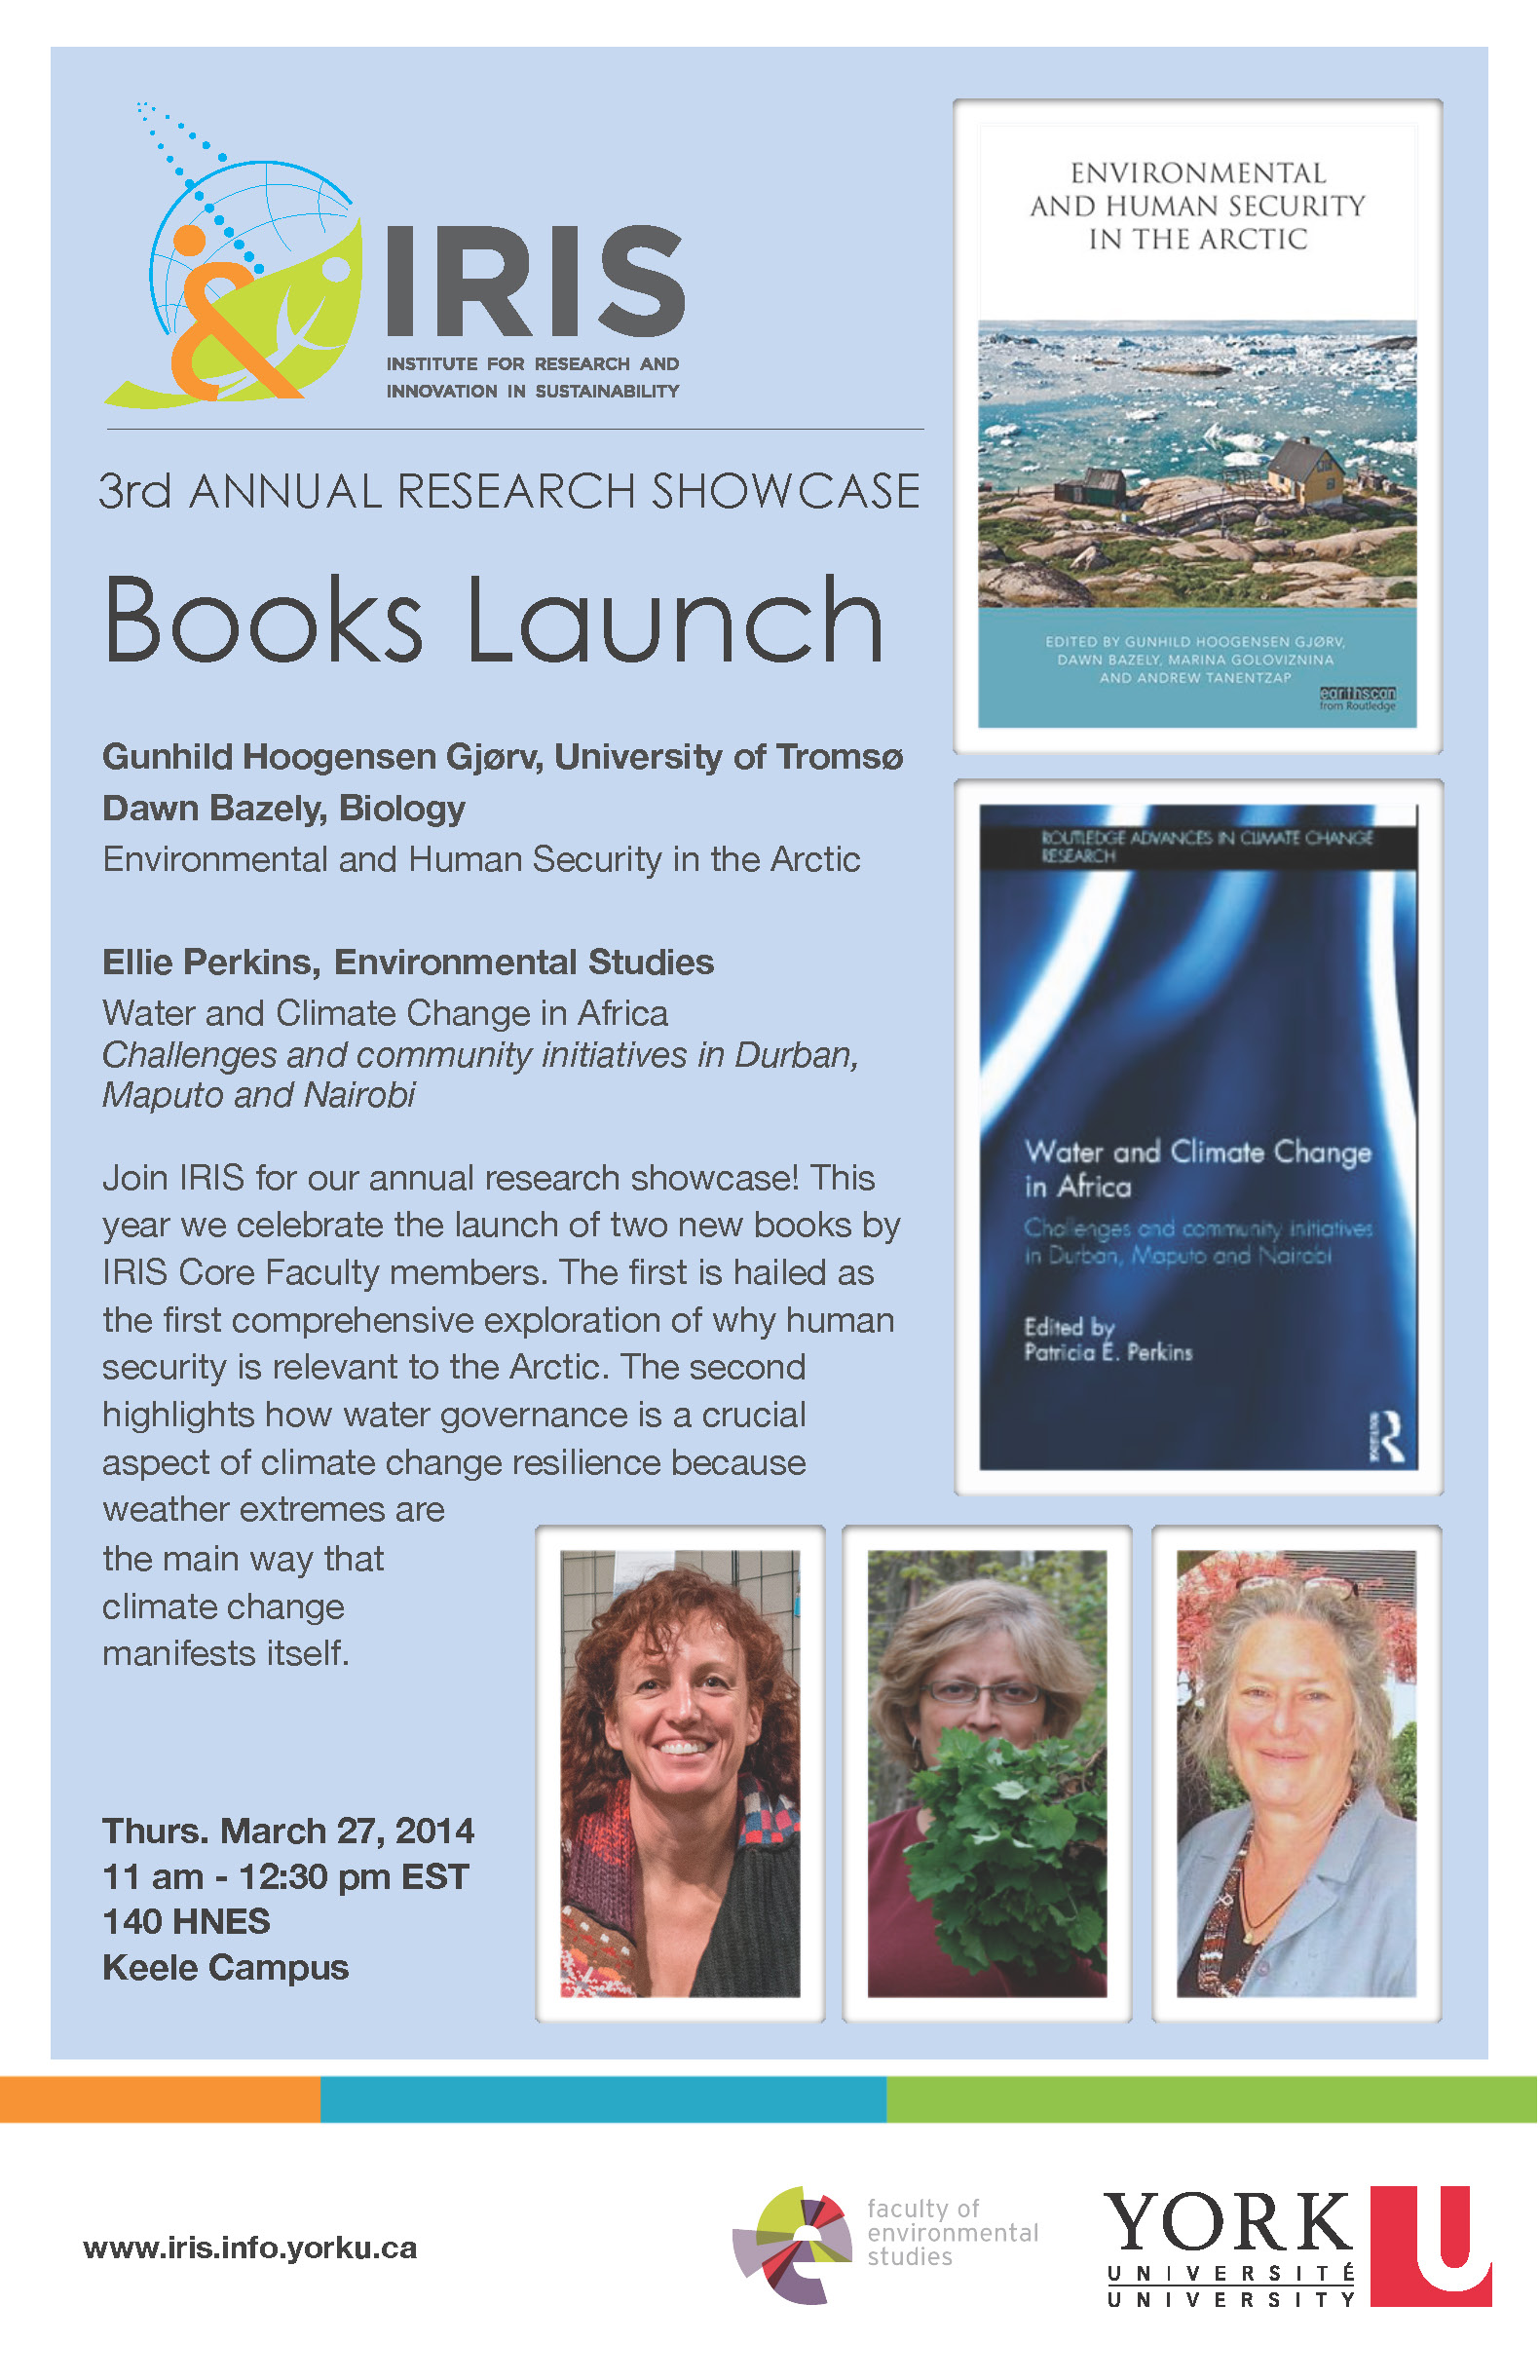 3rd Annual Research Showcase: Books Launch @ 140 HNES, York University, Keele Campus